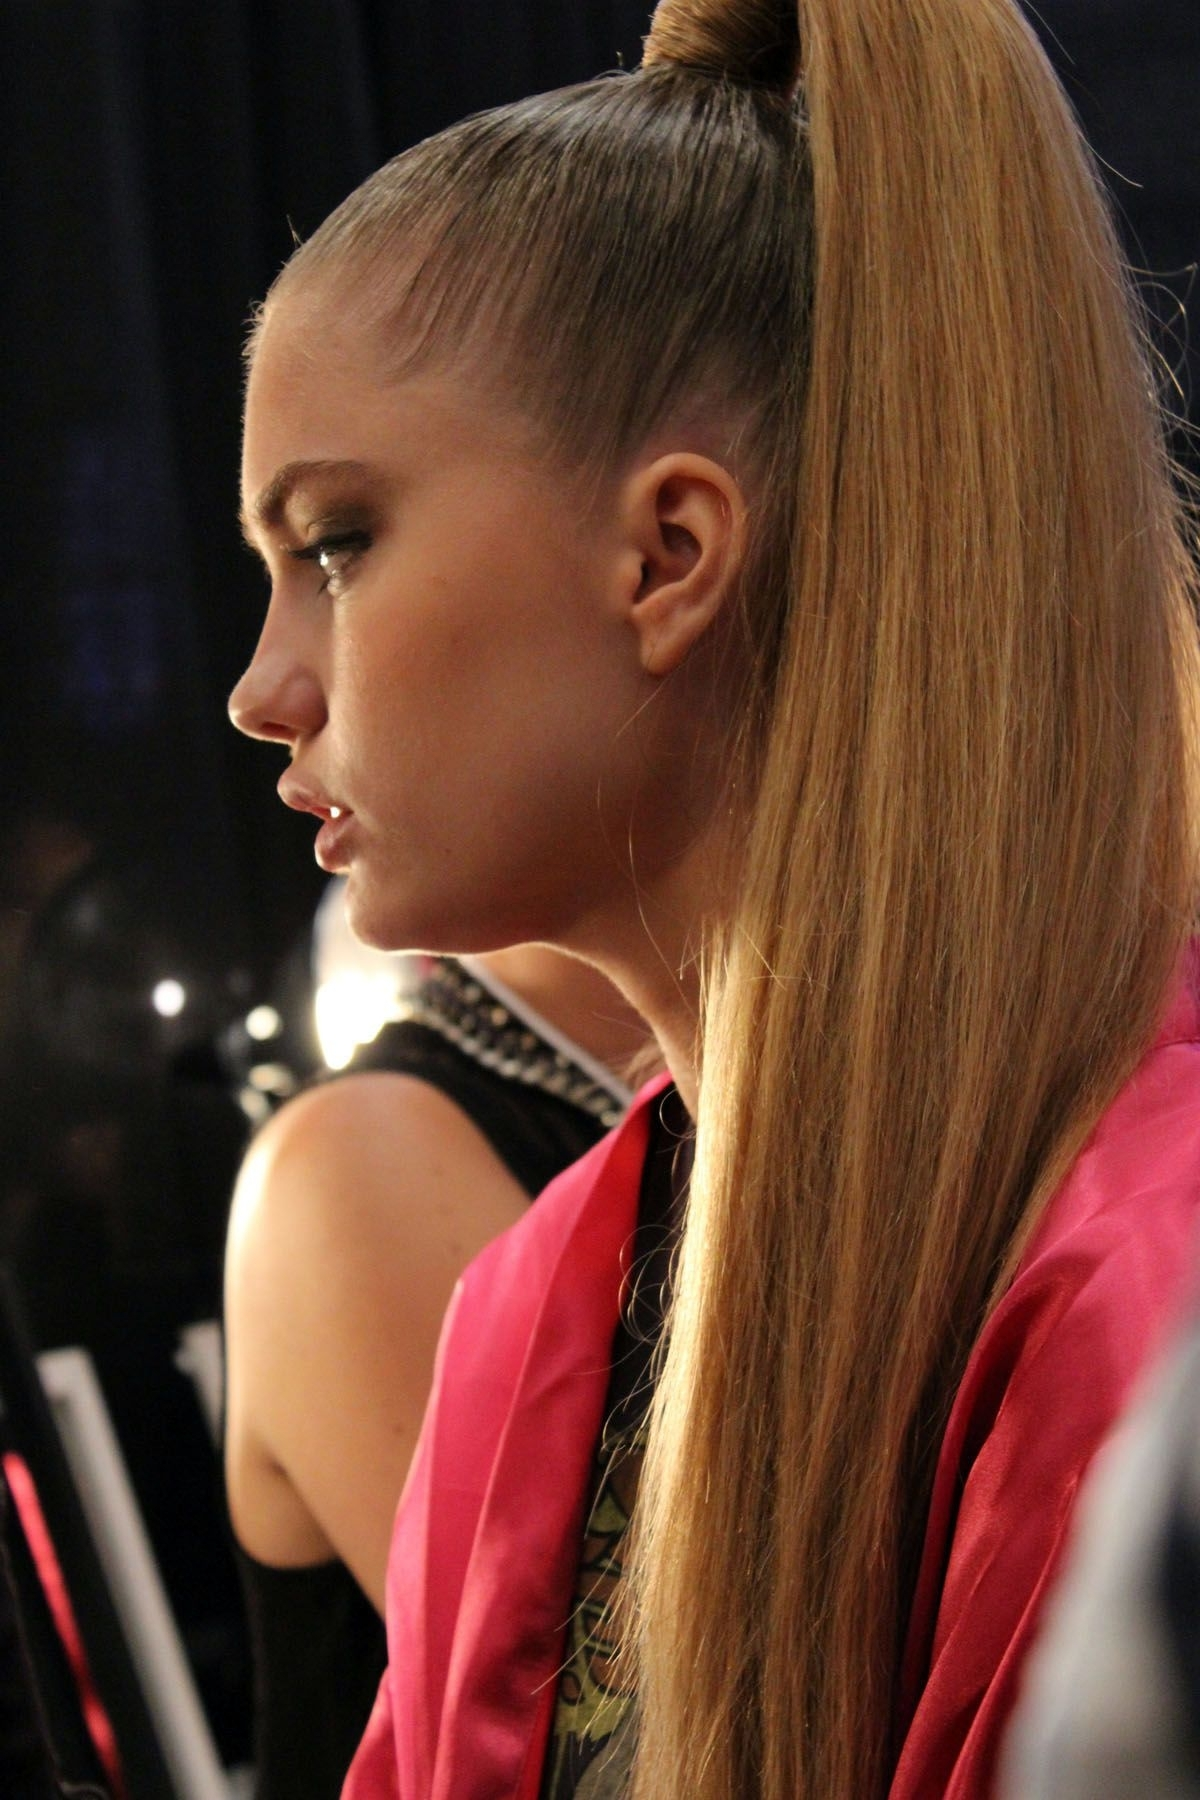 Ponytail Hairstyle Miami Beach Fashion Week Swim Sleek High Ponytail Throughout Most Recently Released High And Glossy Brown Blonde Pony Hairstyles (View 18 of 20)